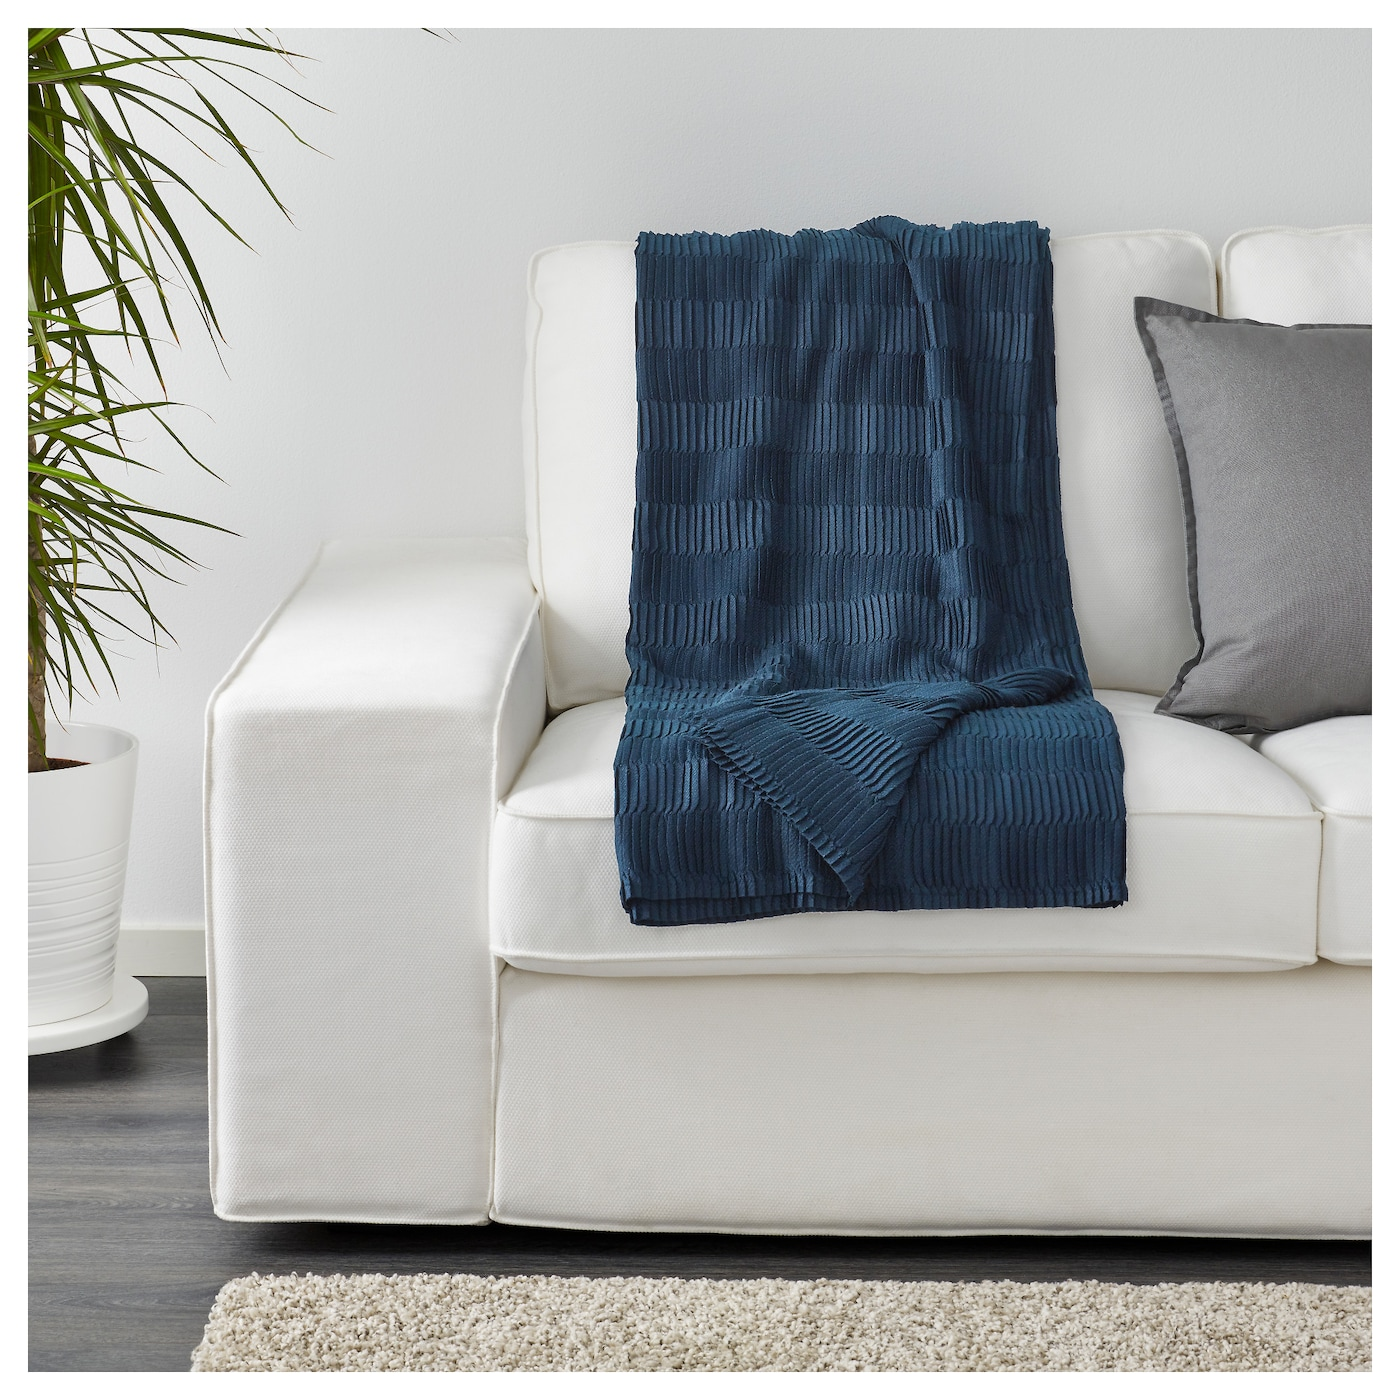 IKEA VÄGMÅLLA throw